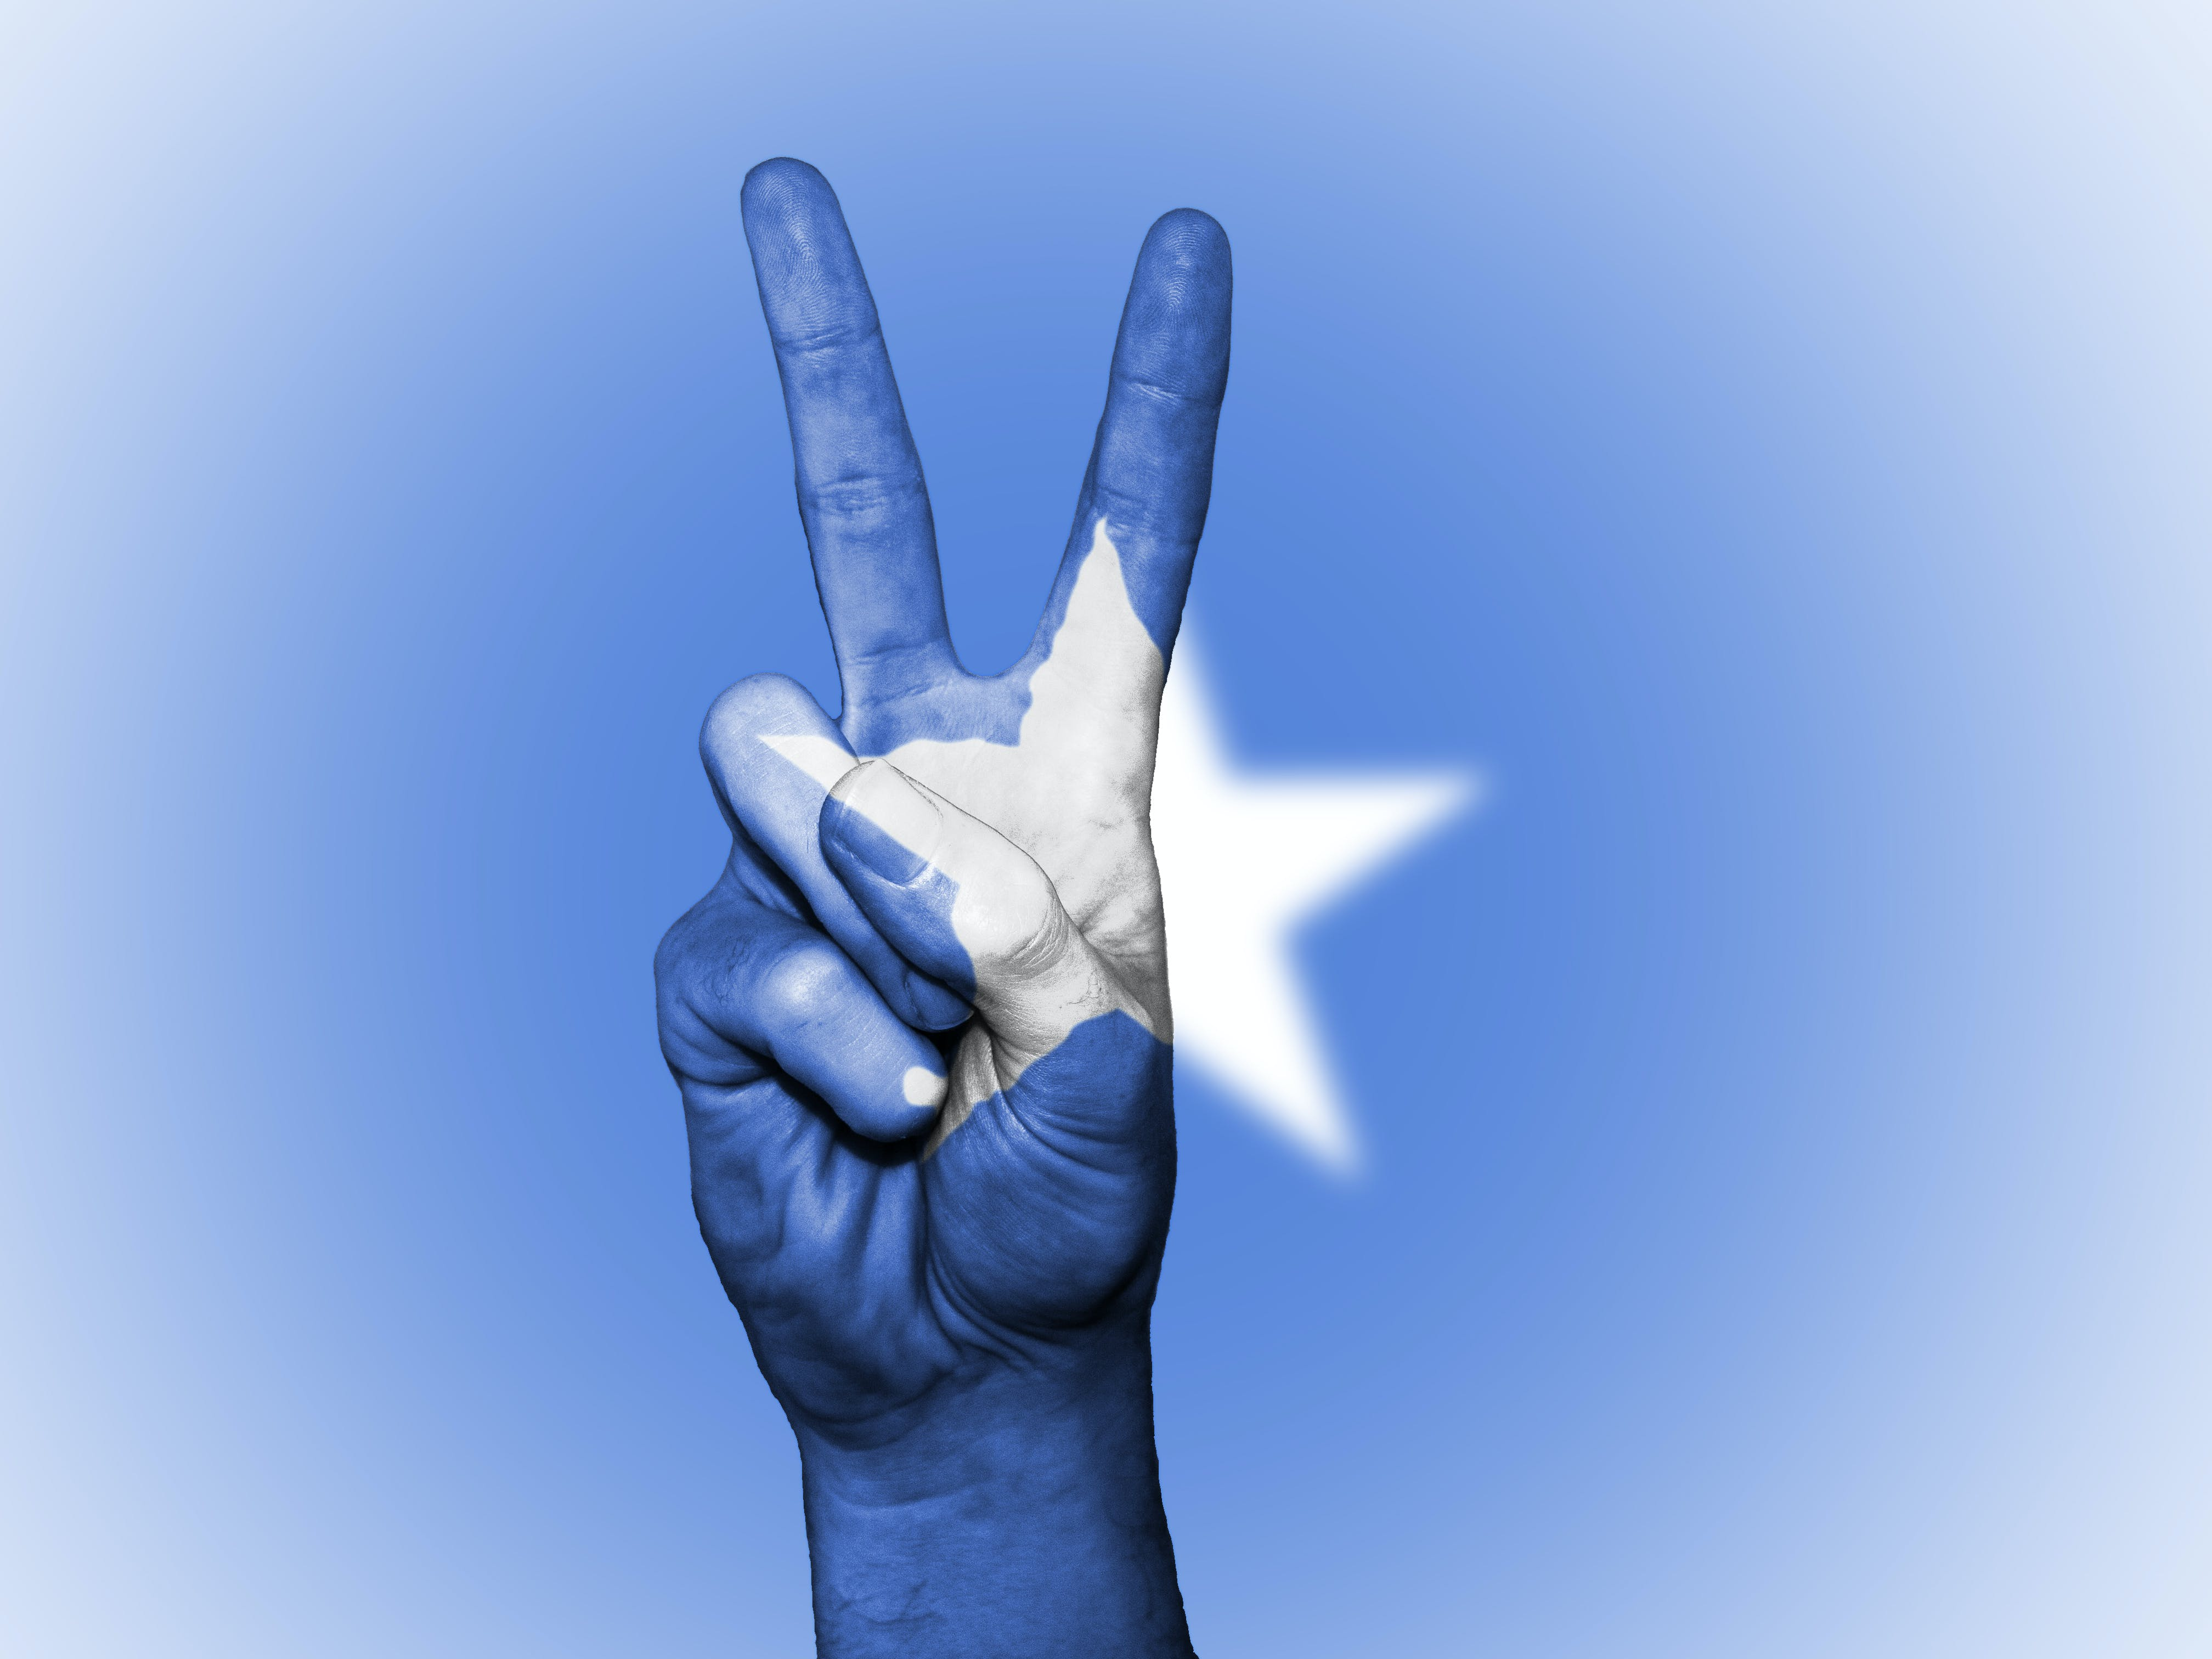 Blue and White Star Painted Hand in Peace-sign Gesture